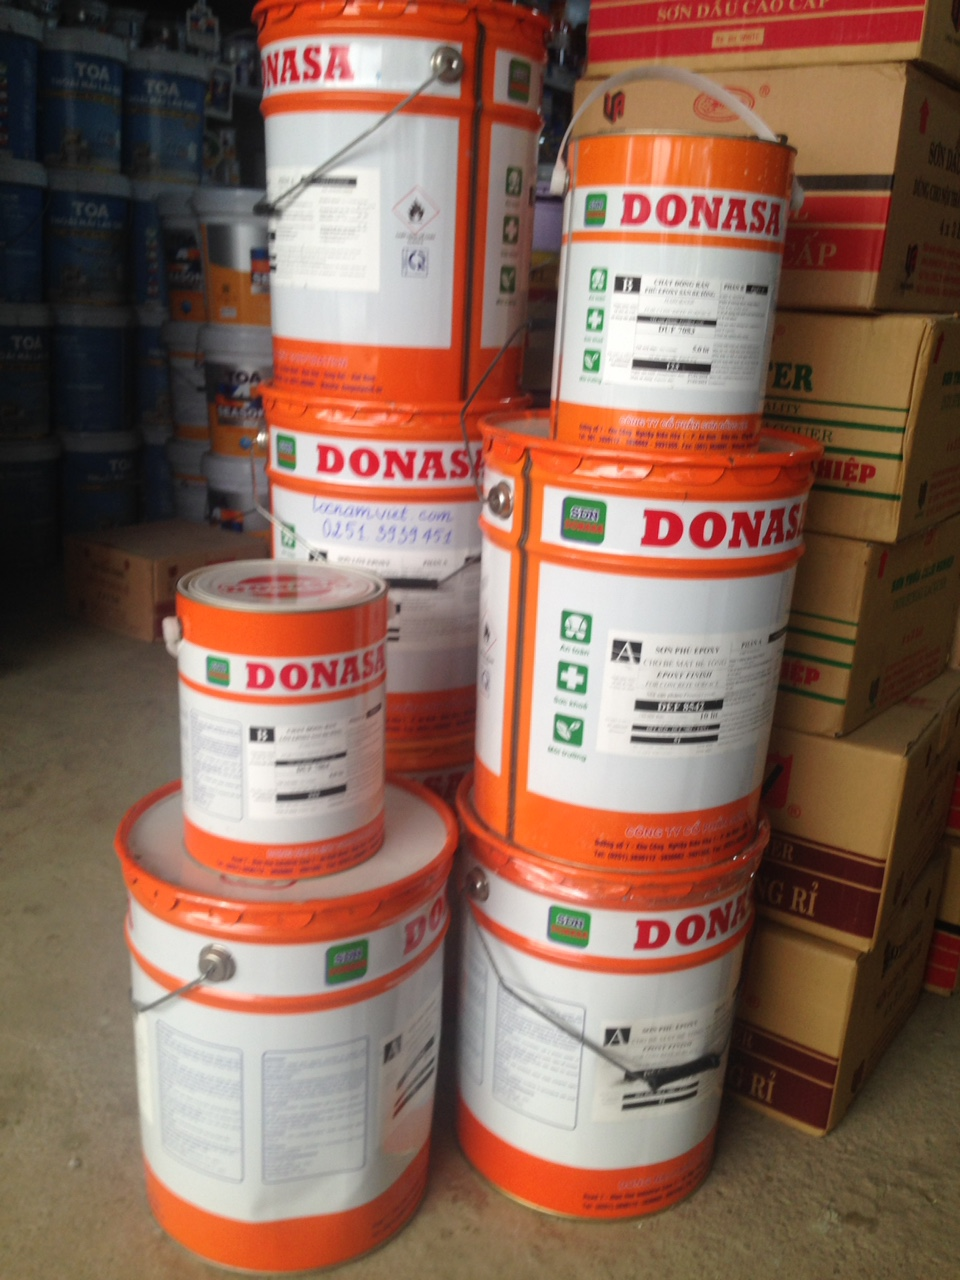 SON EPOXY DONASA (4)